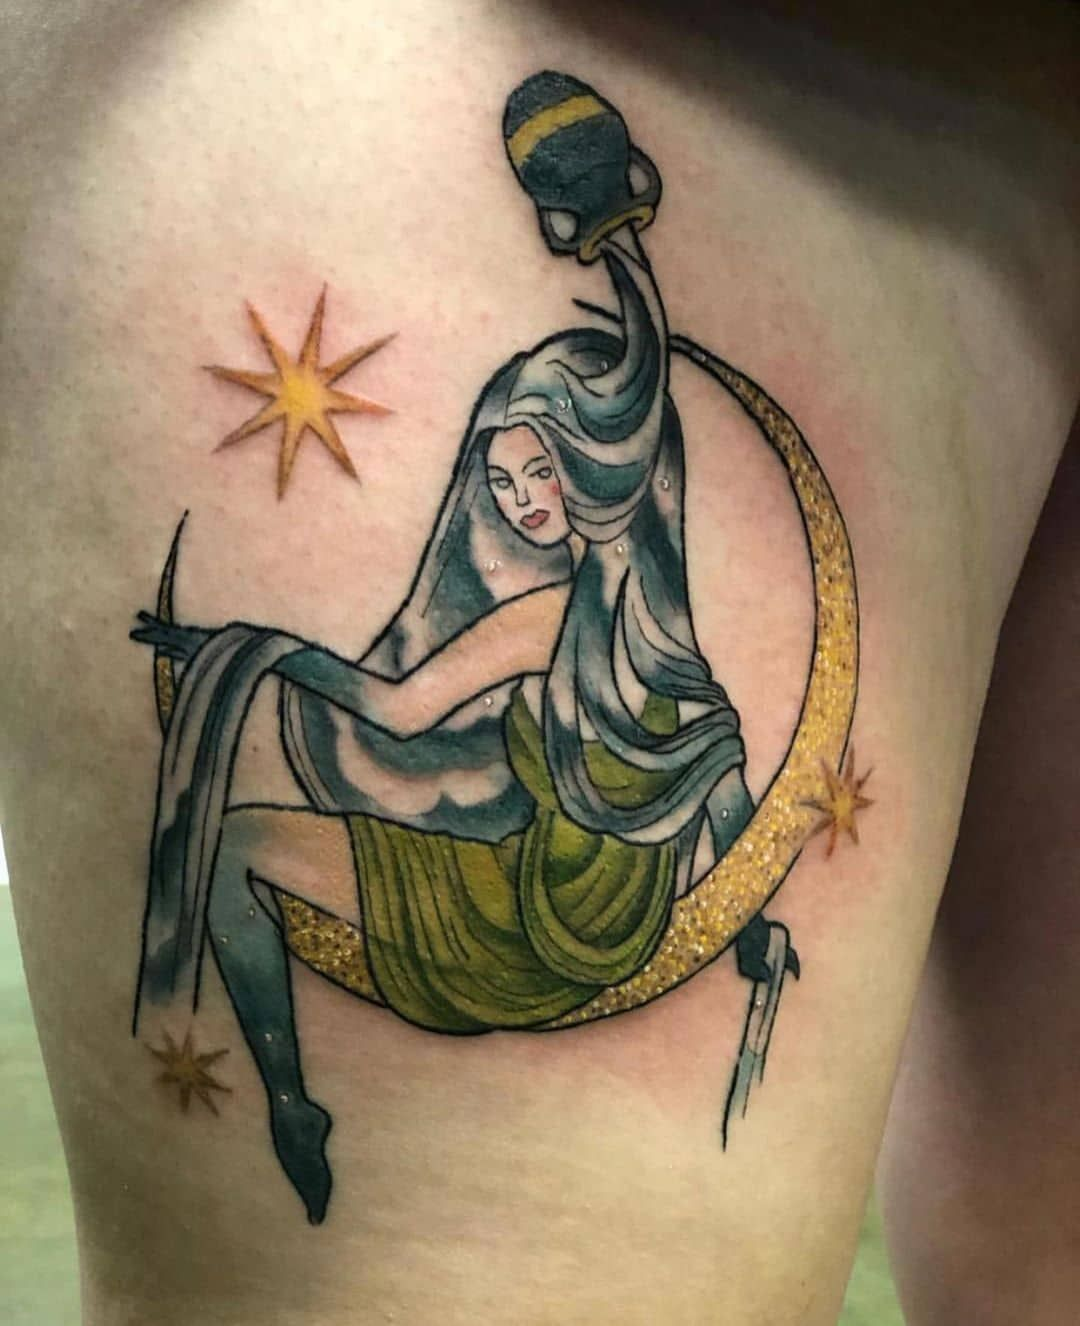 101 Amazing Aquarius Tattoo Designs You Need To See In 2020